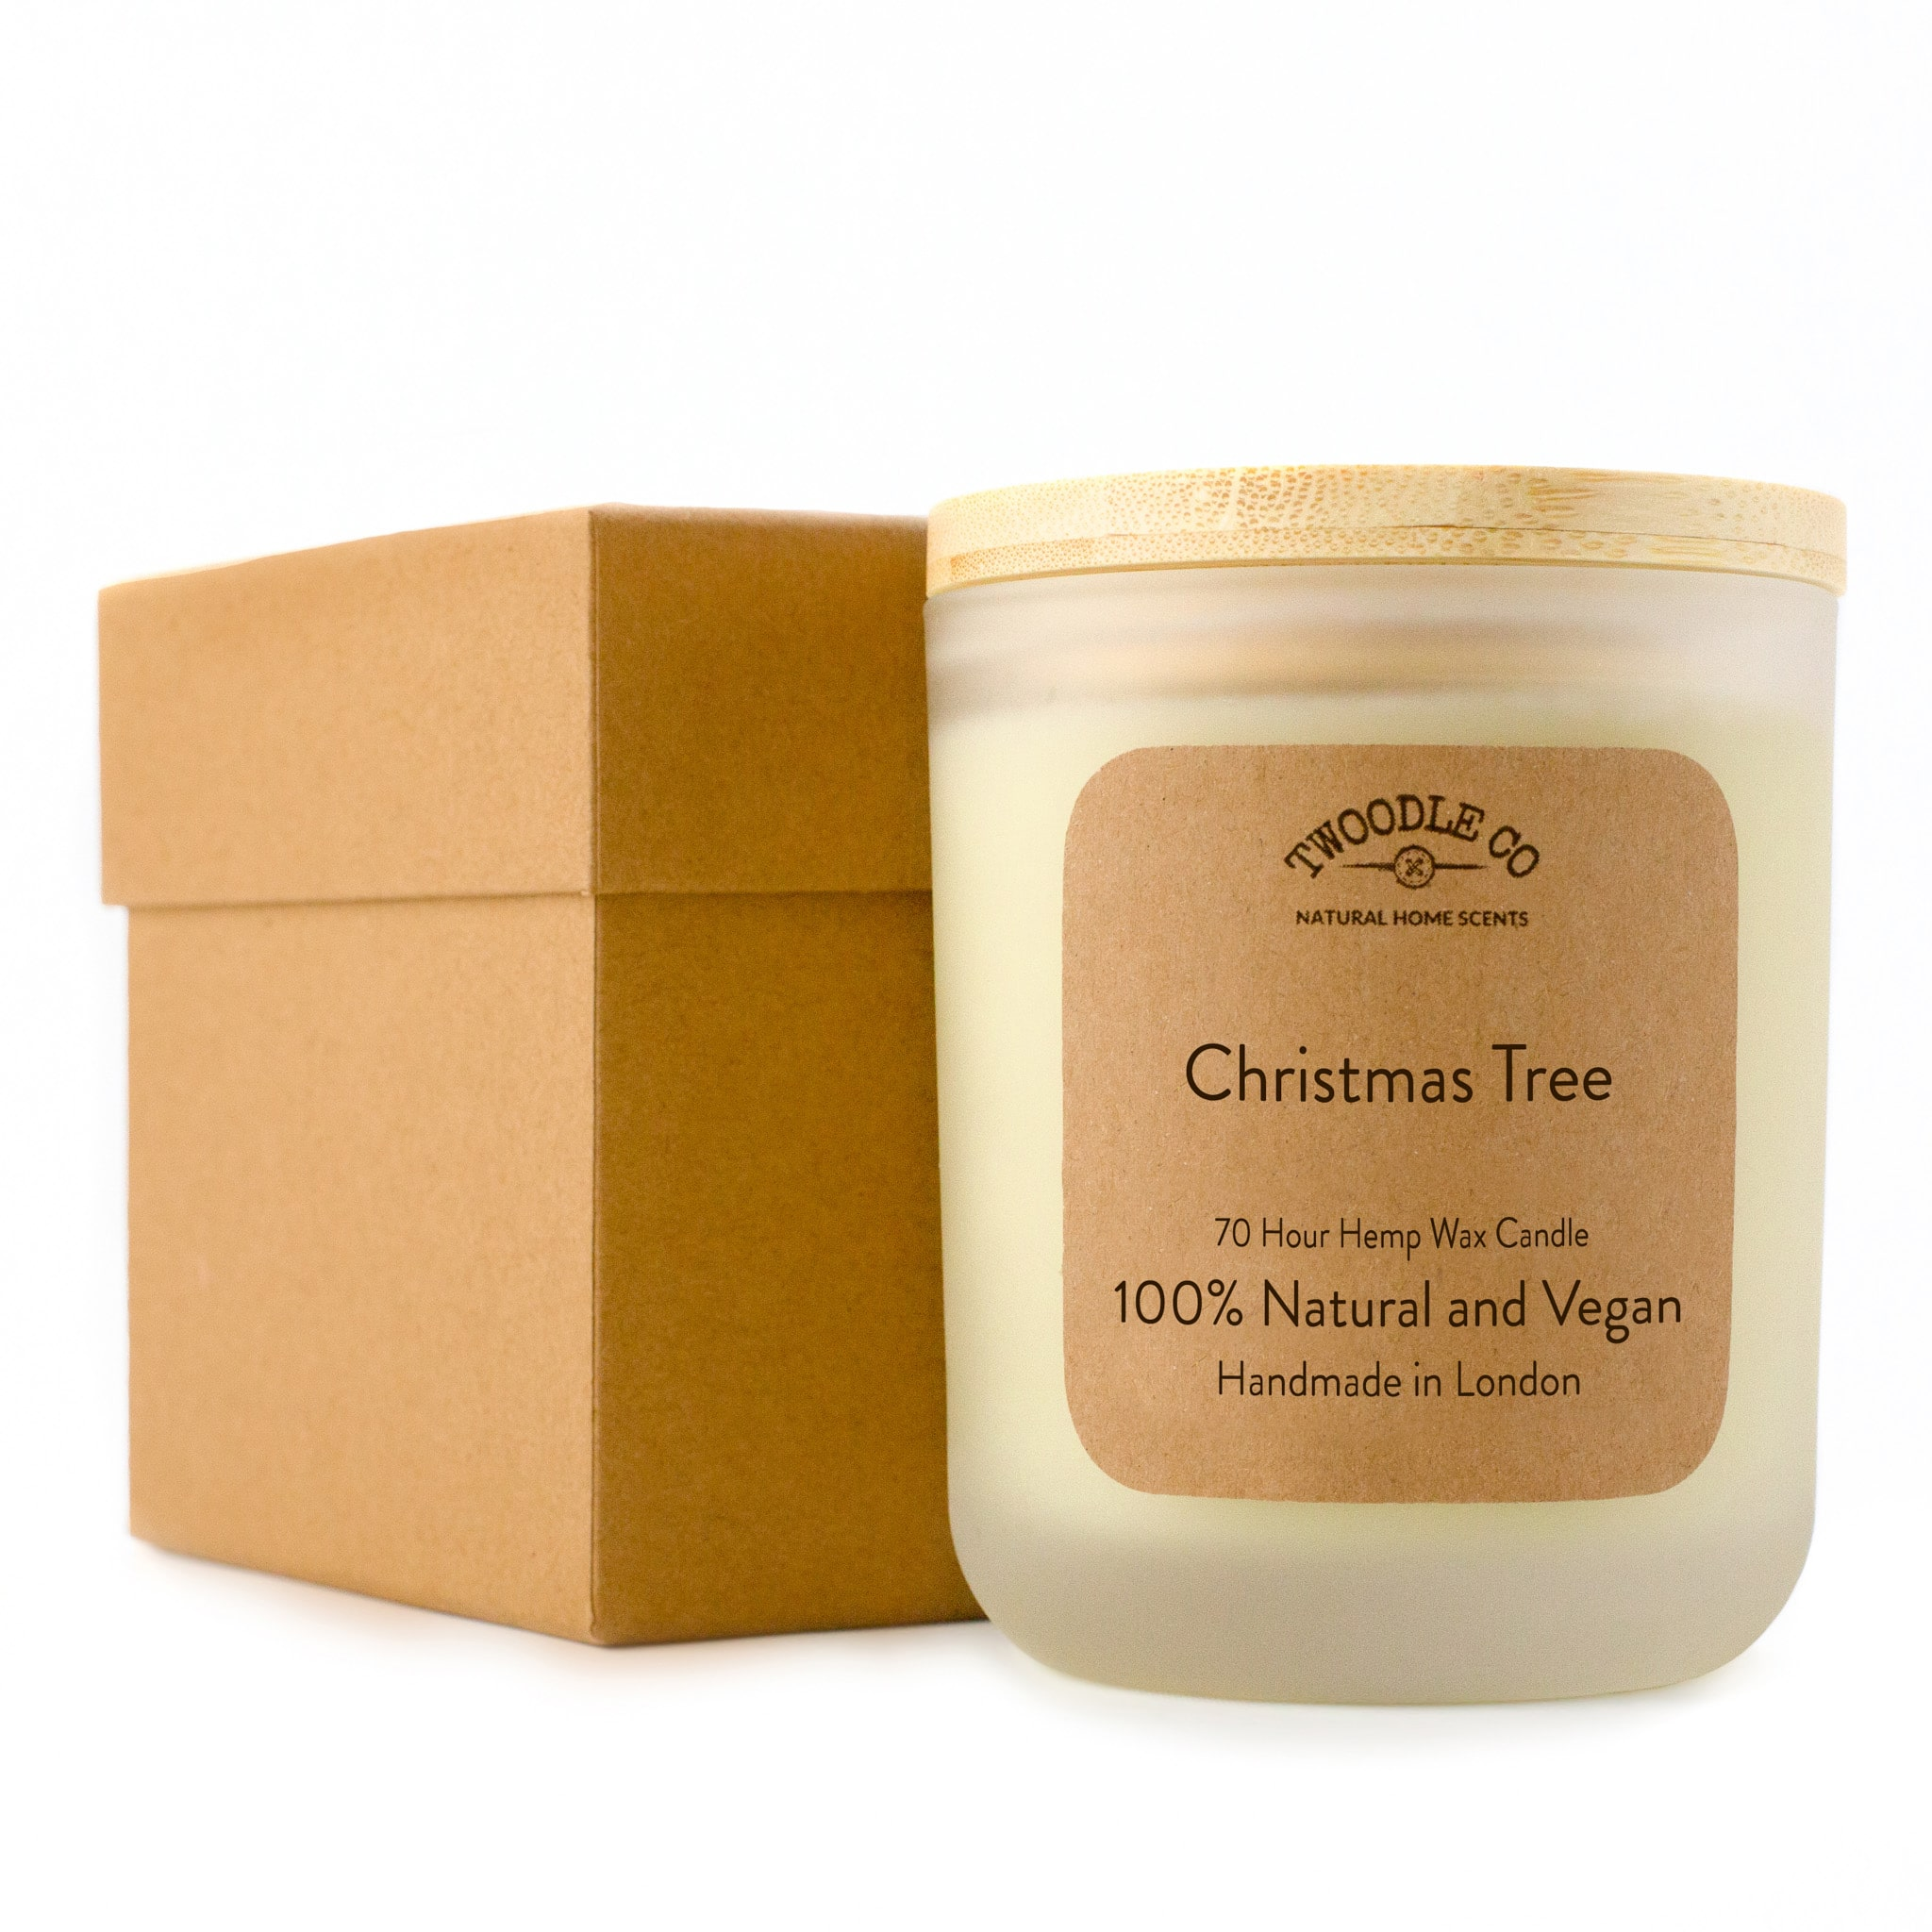 Christmas Tree Large Scented Candle 70 Hour Wax Candle